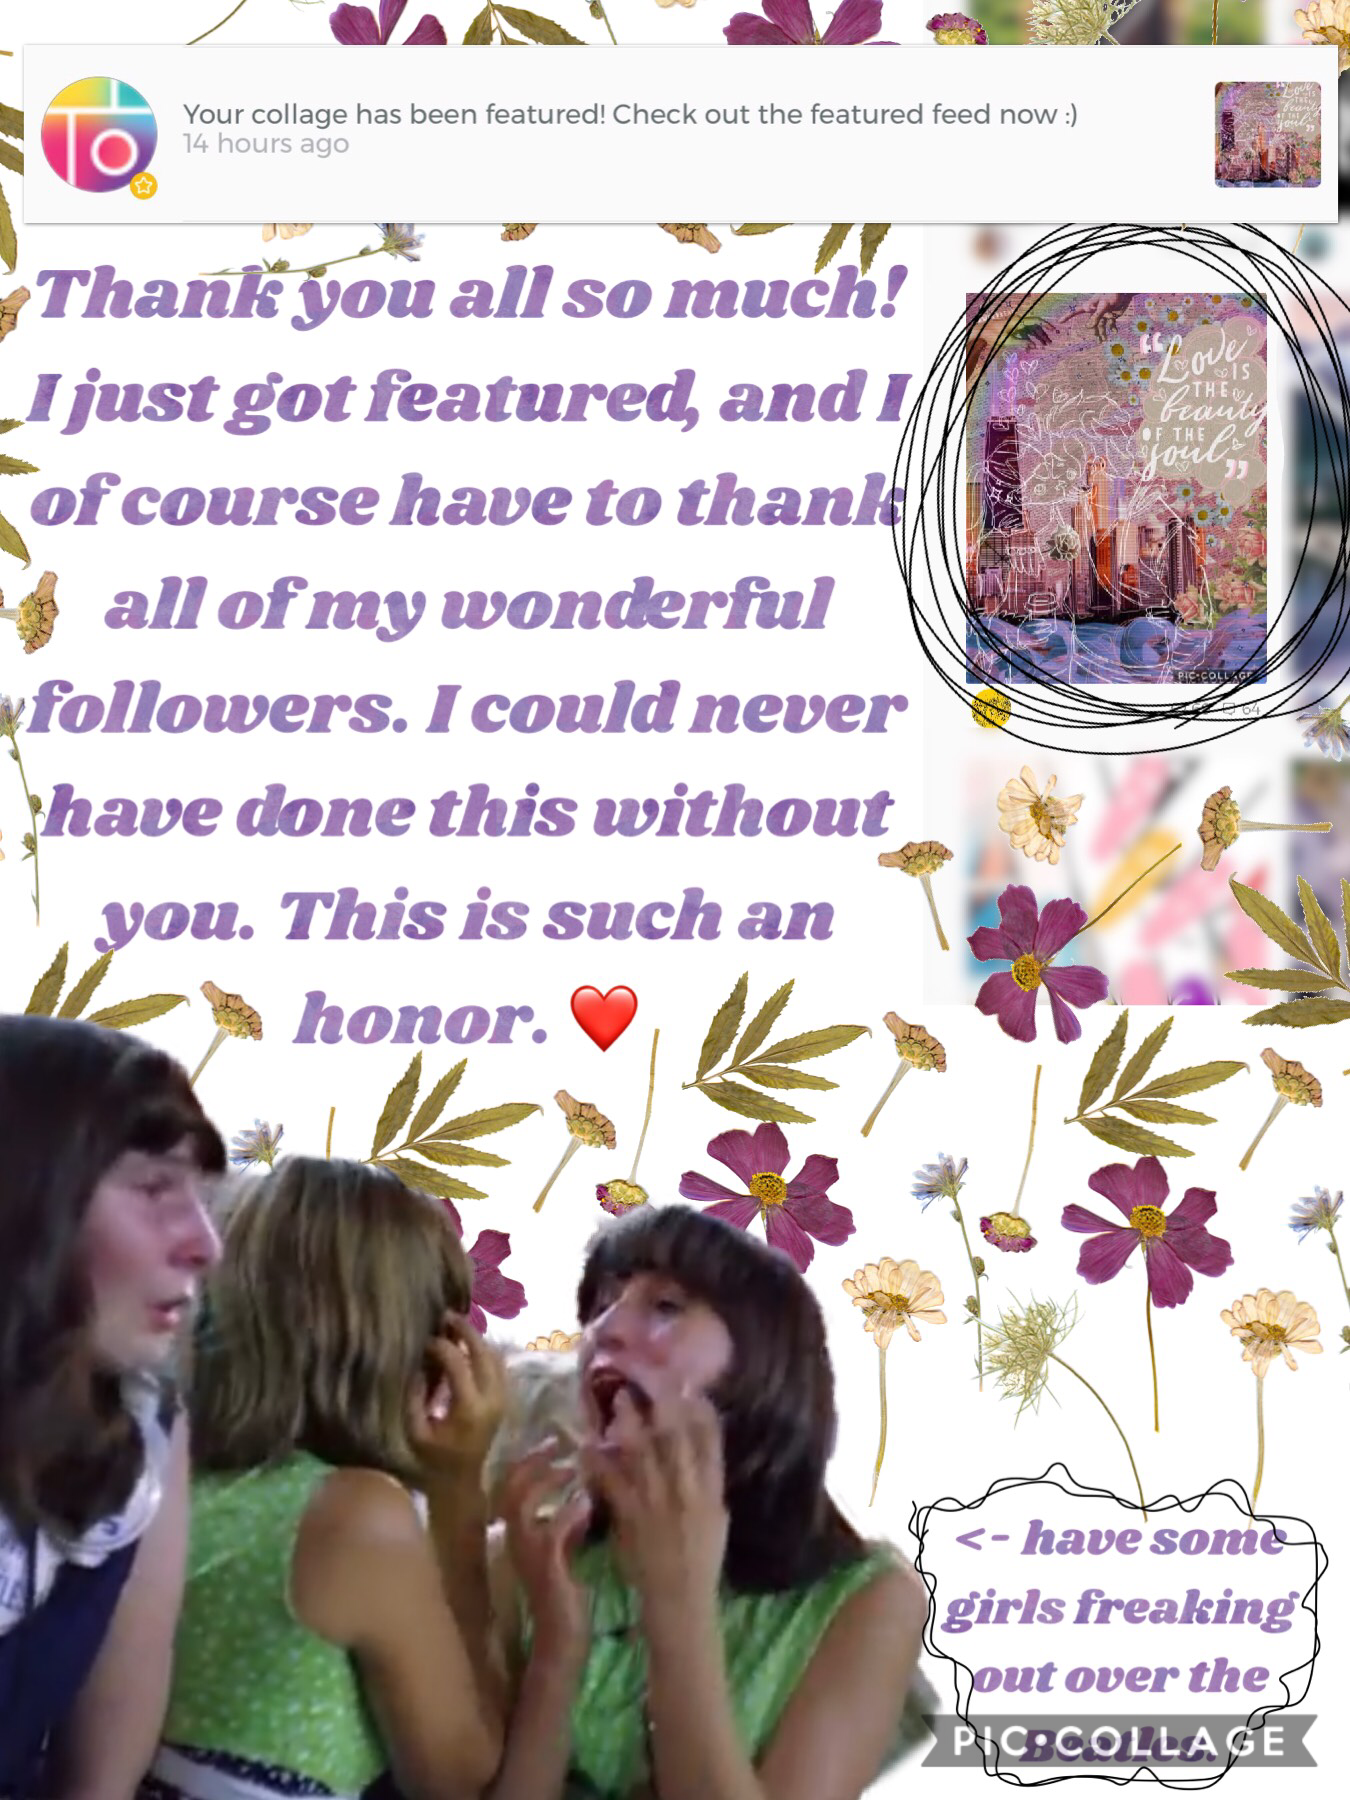 🎉❤️This is my second time getting randomly featured on my account, (as in not joining a PicCollage contest) so thank you everyone. ❤️🎉           I think I've caught Beatlemania (wow over 50 years late to the party)